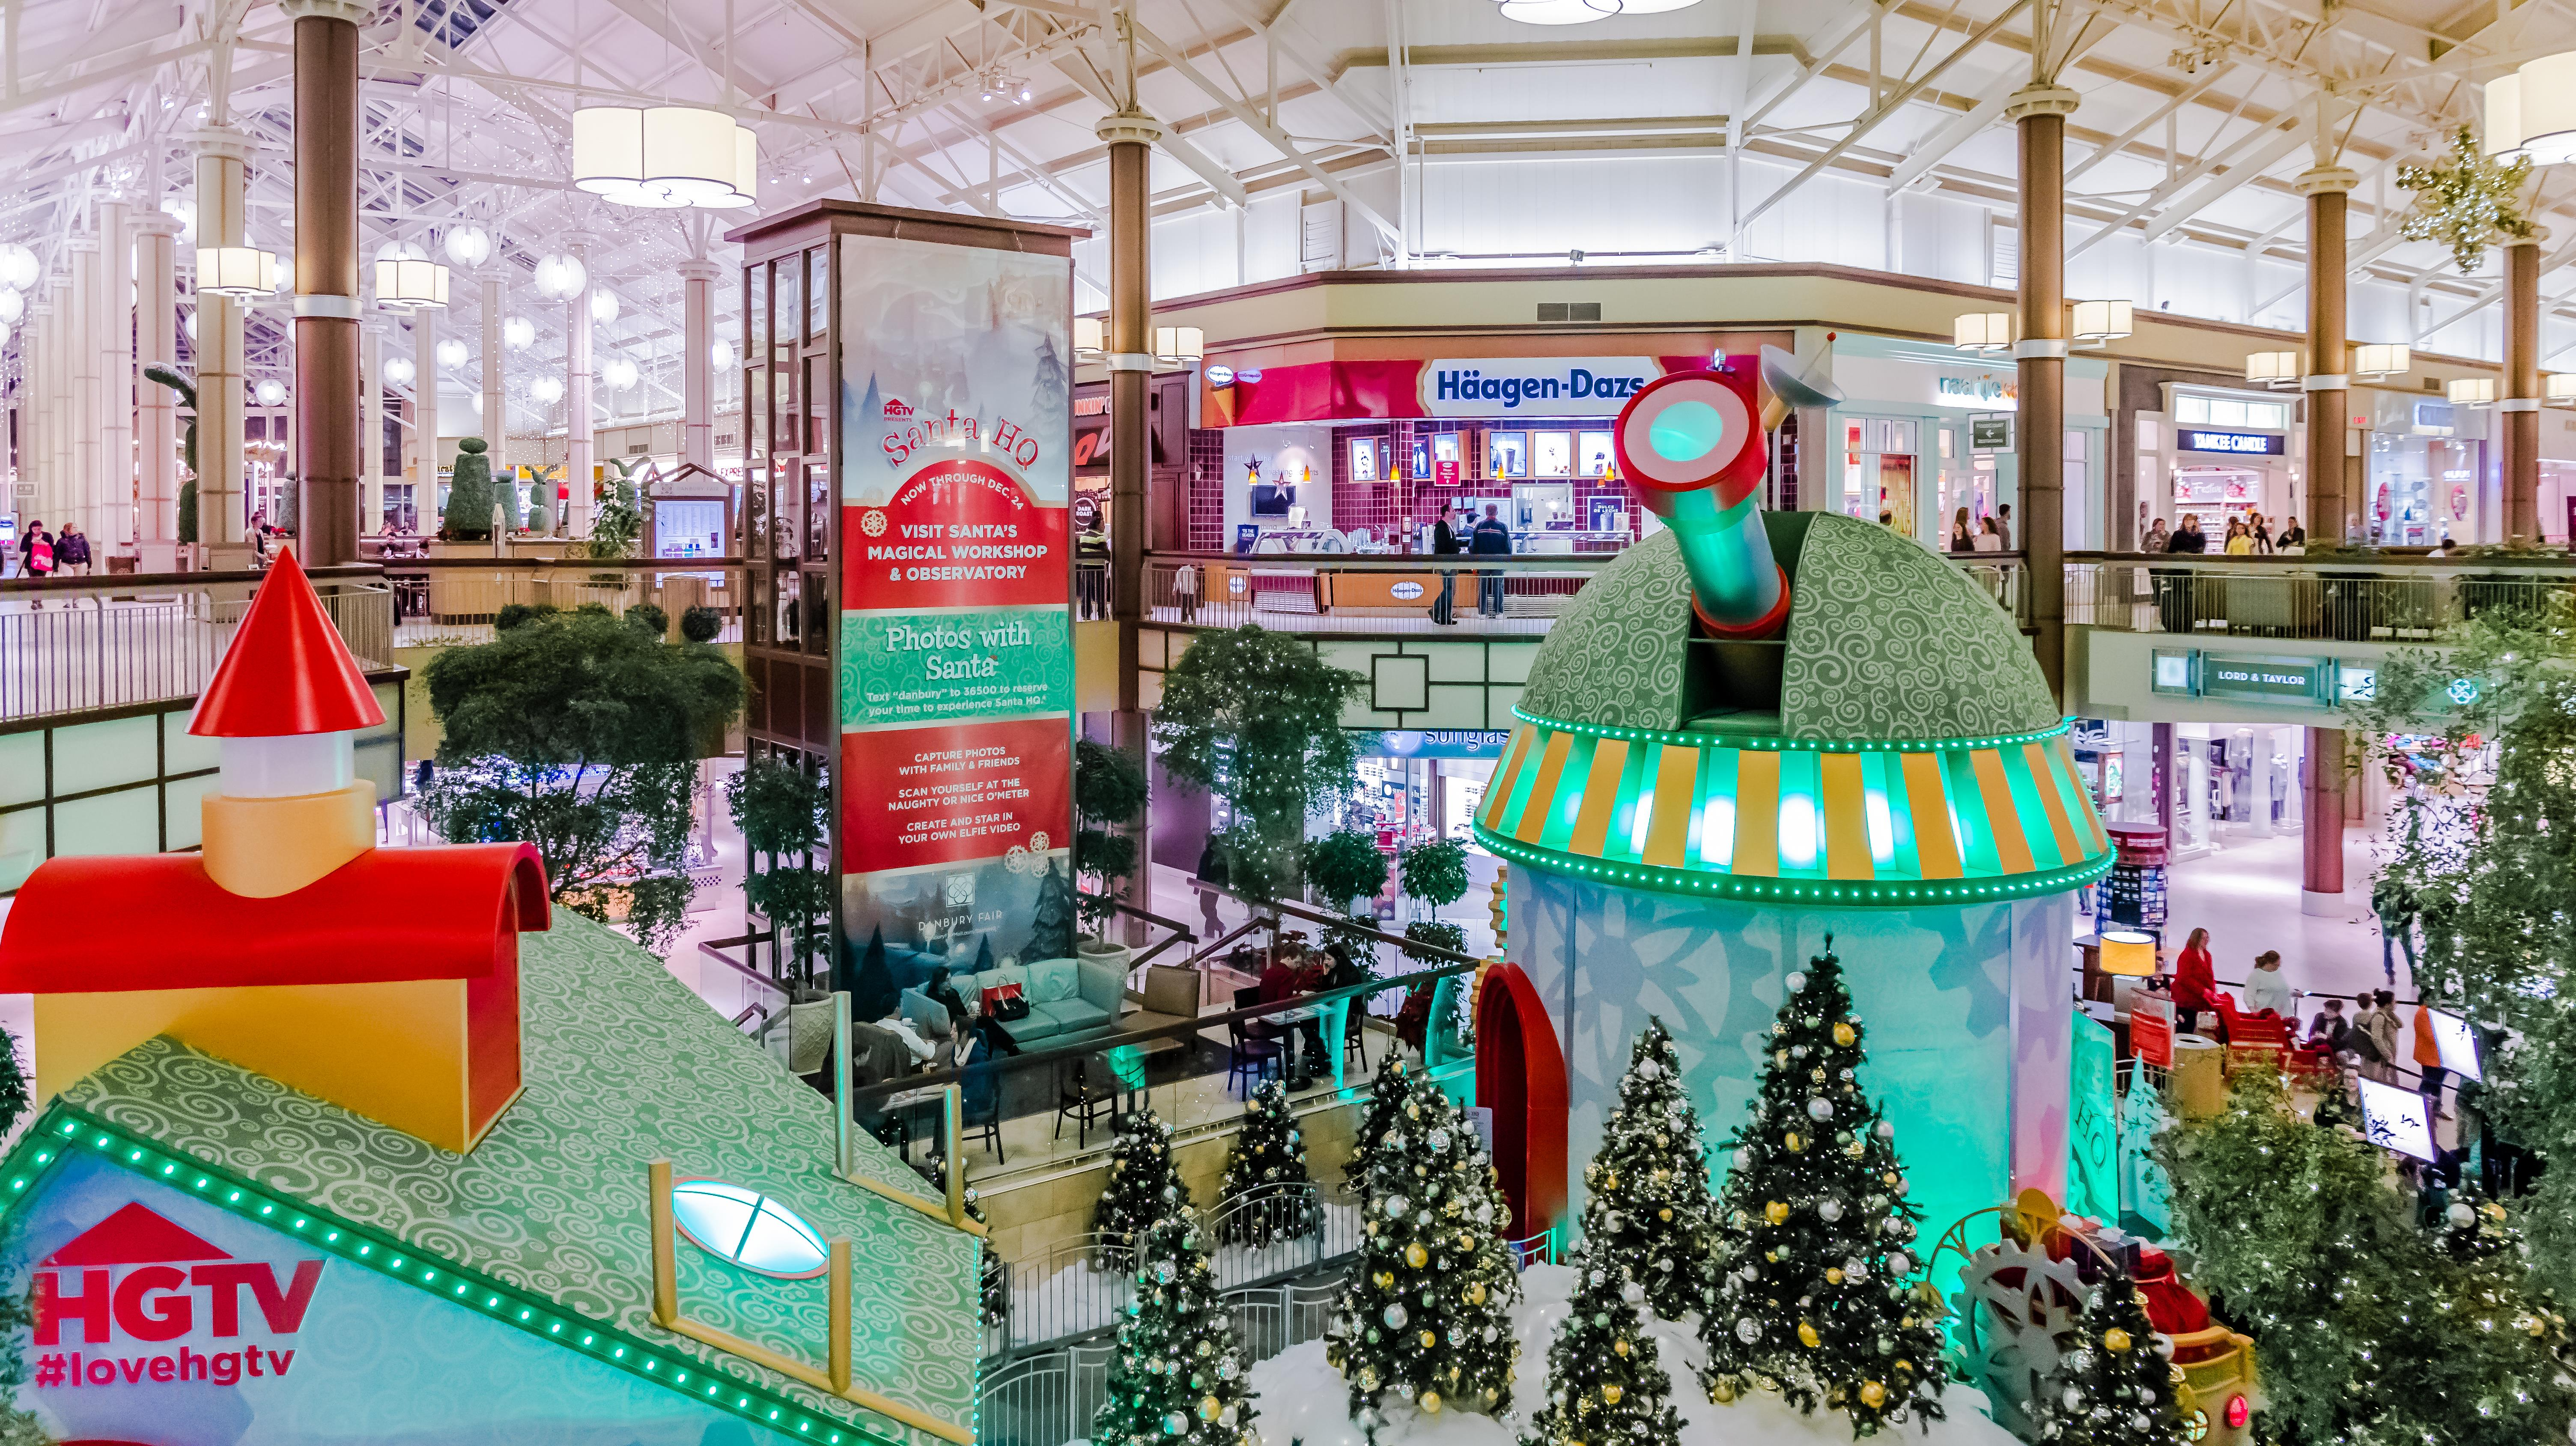 Pop2Life, Macerich & HGTV join forces to take the holiday experience to the next level.